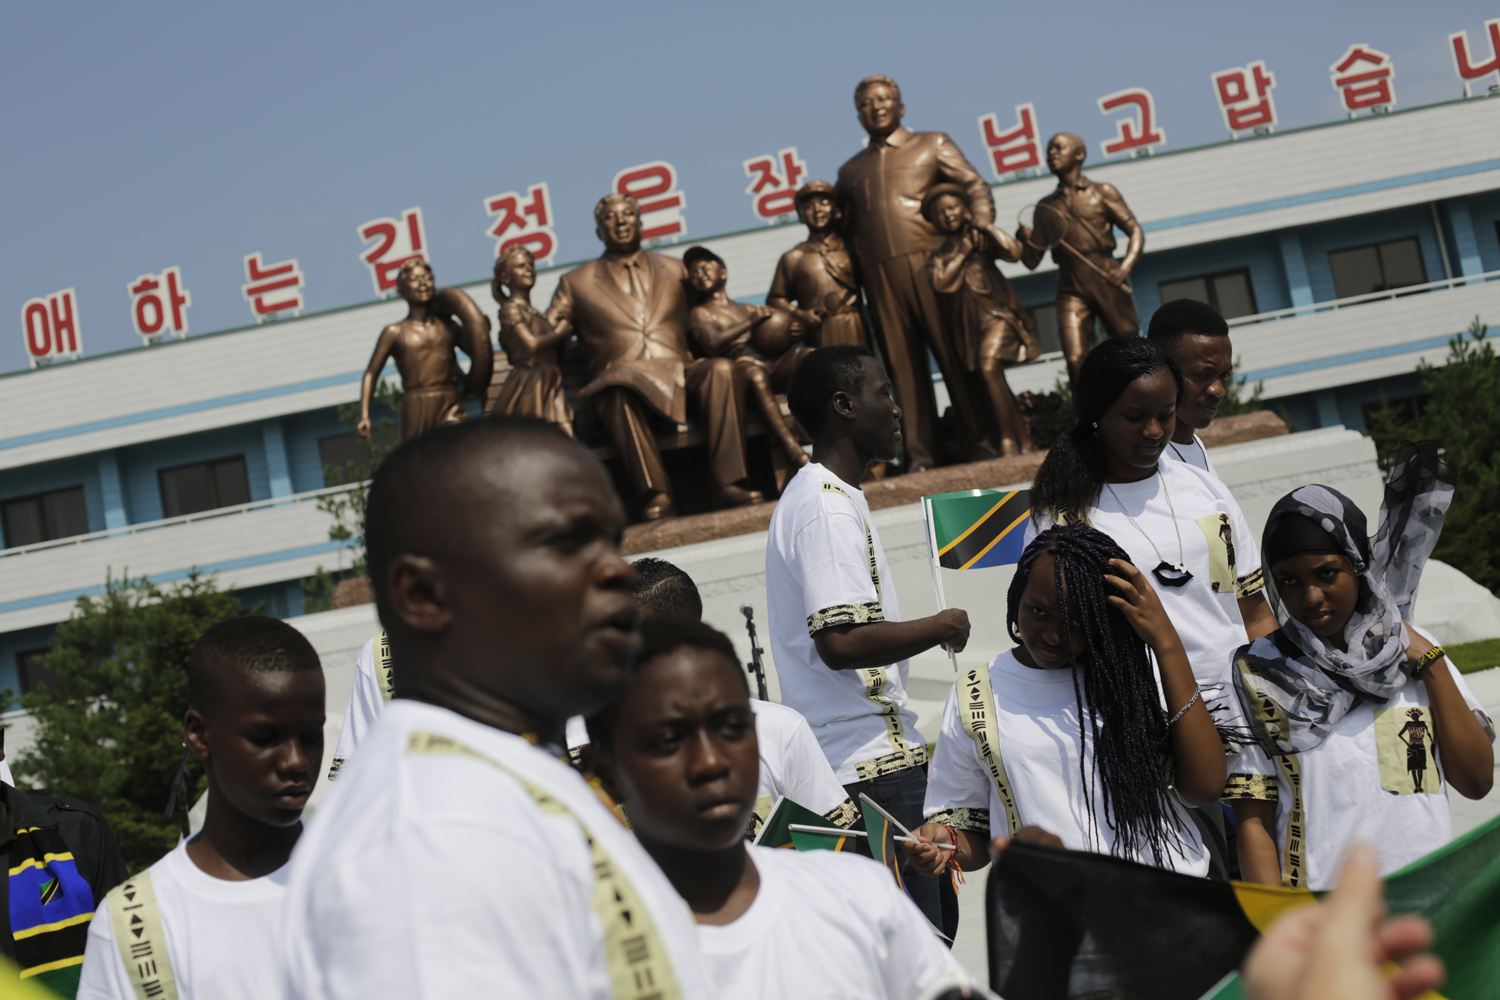 Students from the Laureat International School in Tanzania walk past a statue of the late North Korean leaders Kim Il Sung and Kim Jong Il, surrounded by children, on the parade square of the Songdowon International Children's Camp, Tuesday, July 29, 2014, in Wonsan, North Korea.